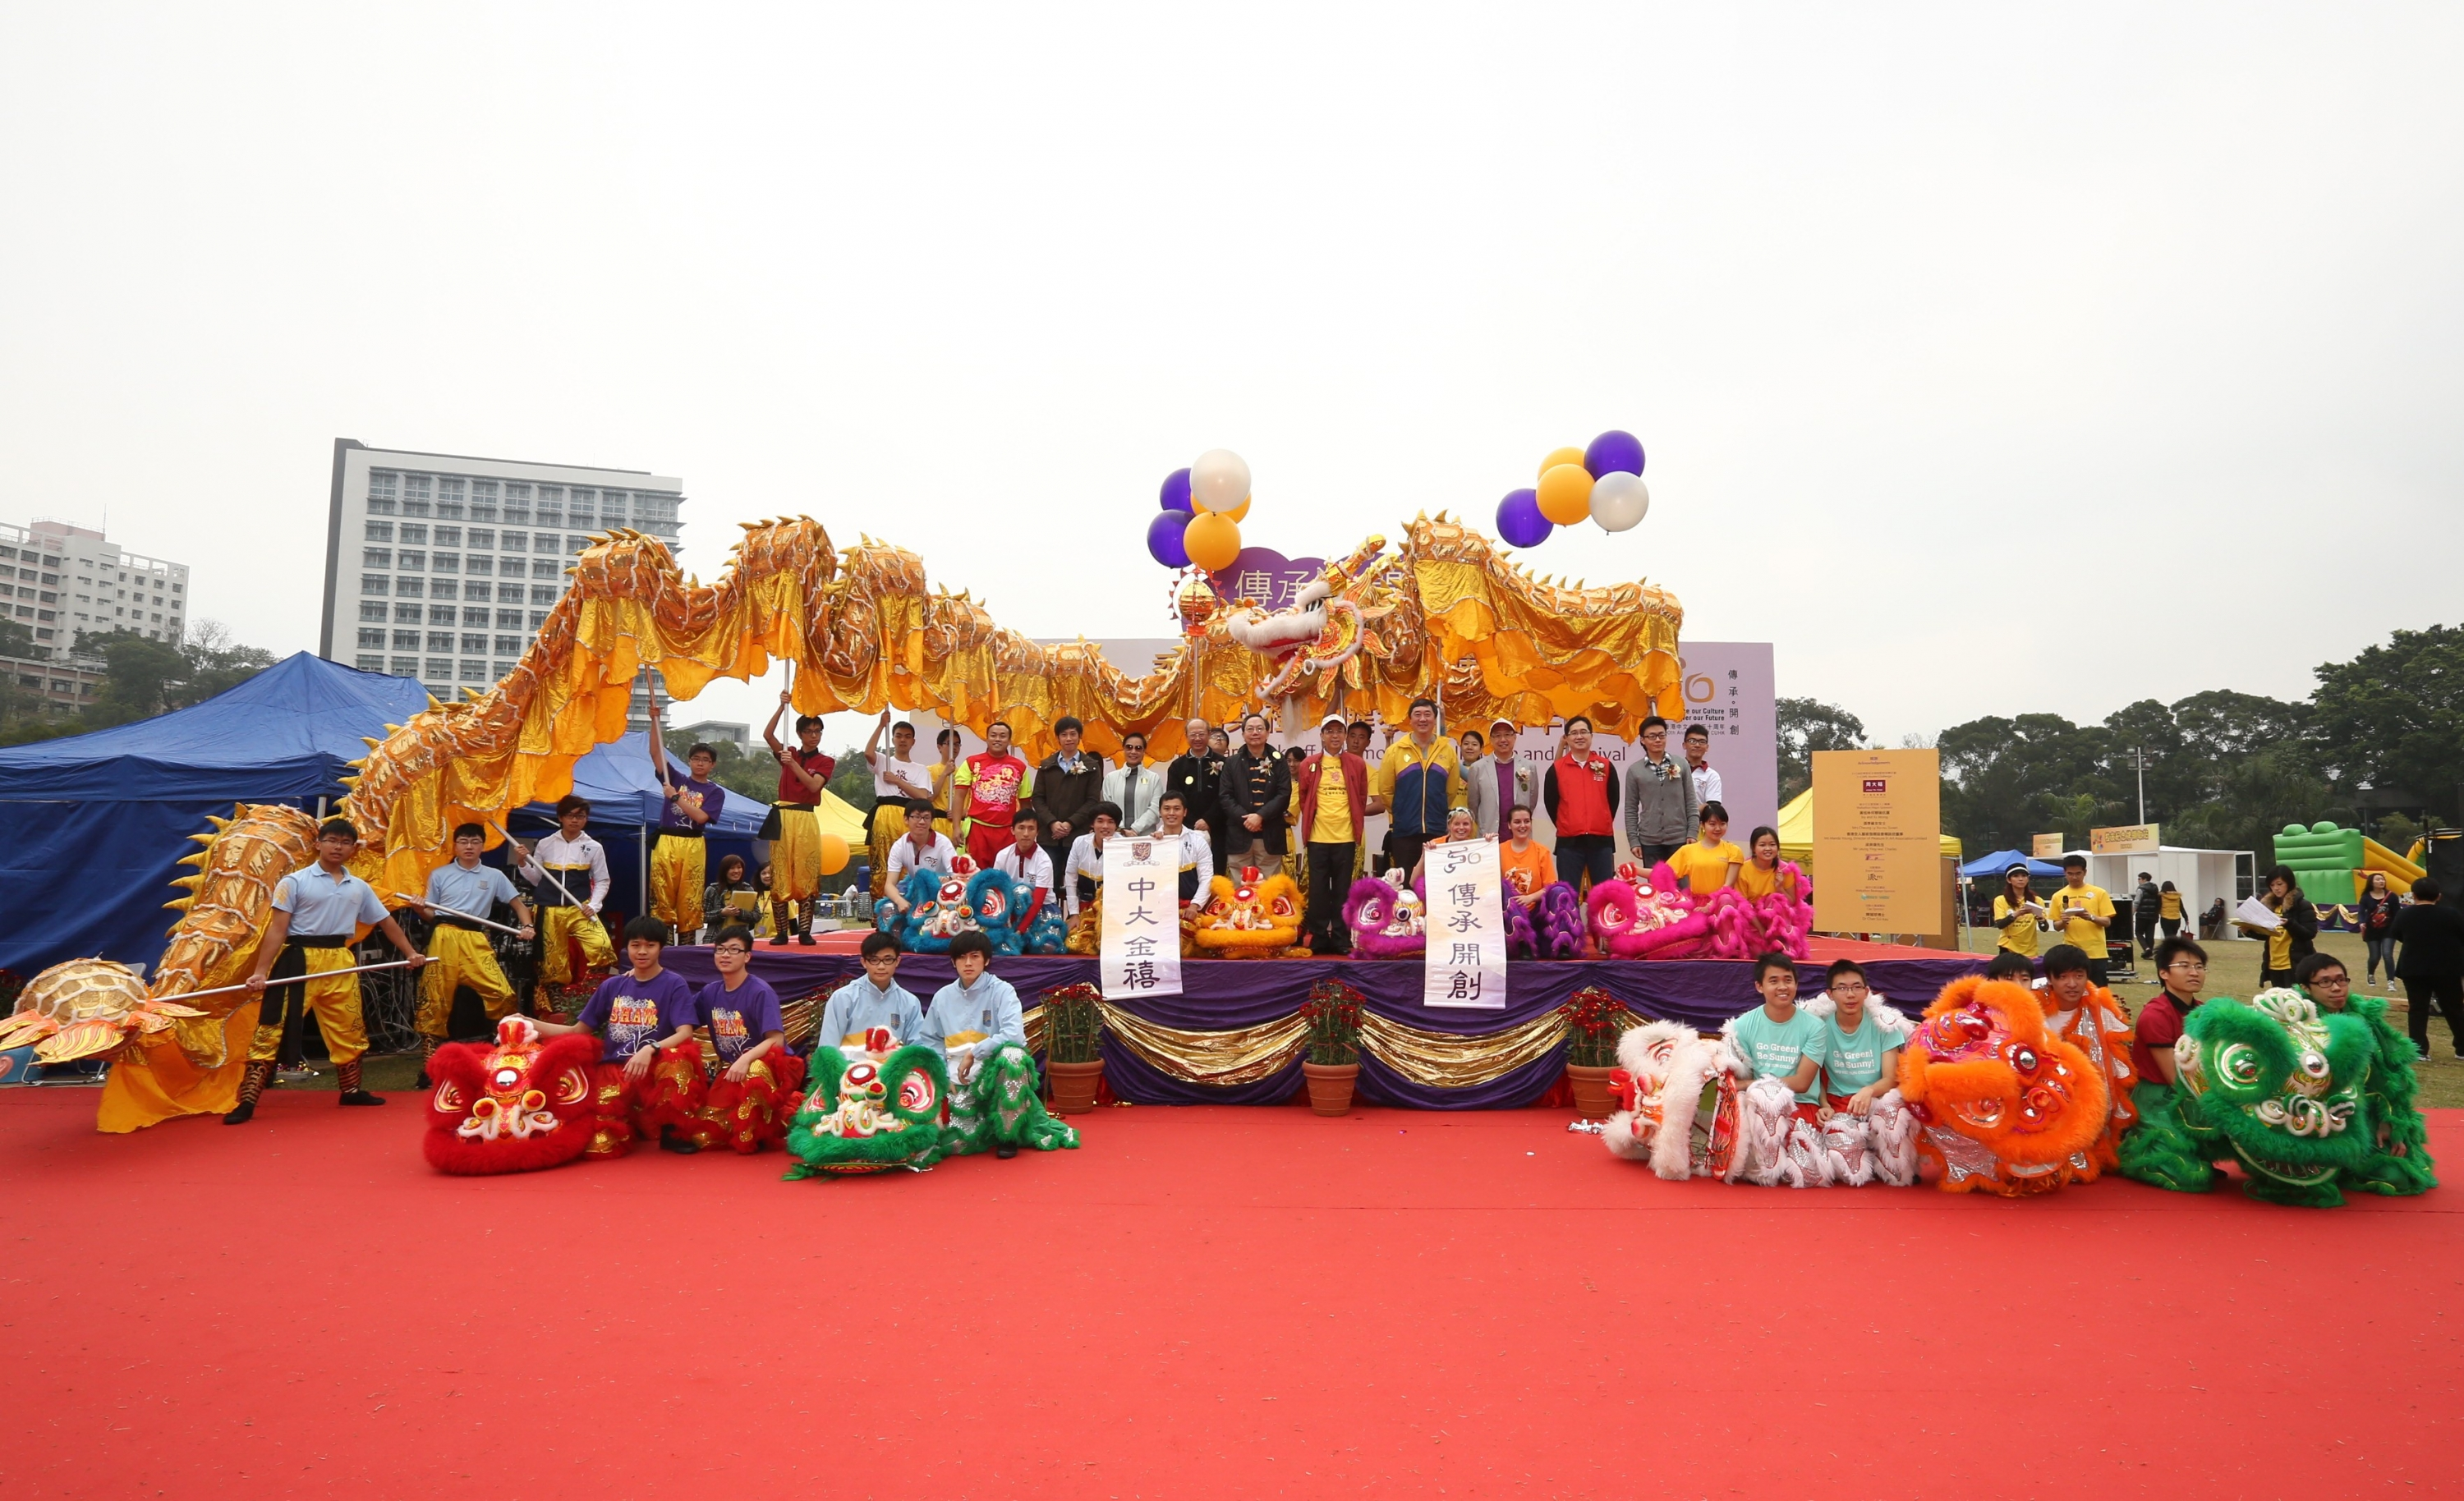 A dragon and lion dance perfromed by CUHK students, representing the University and its nine colleges.